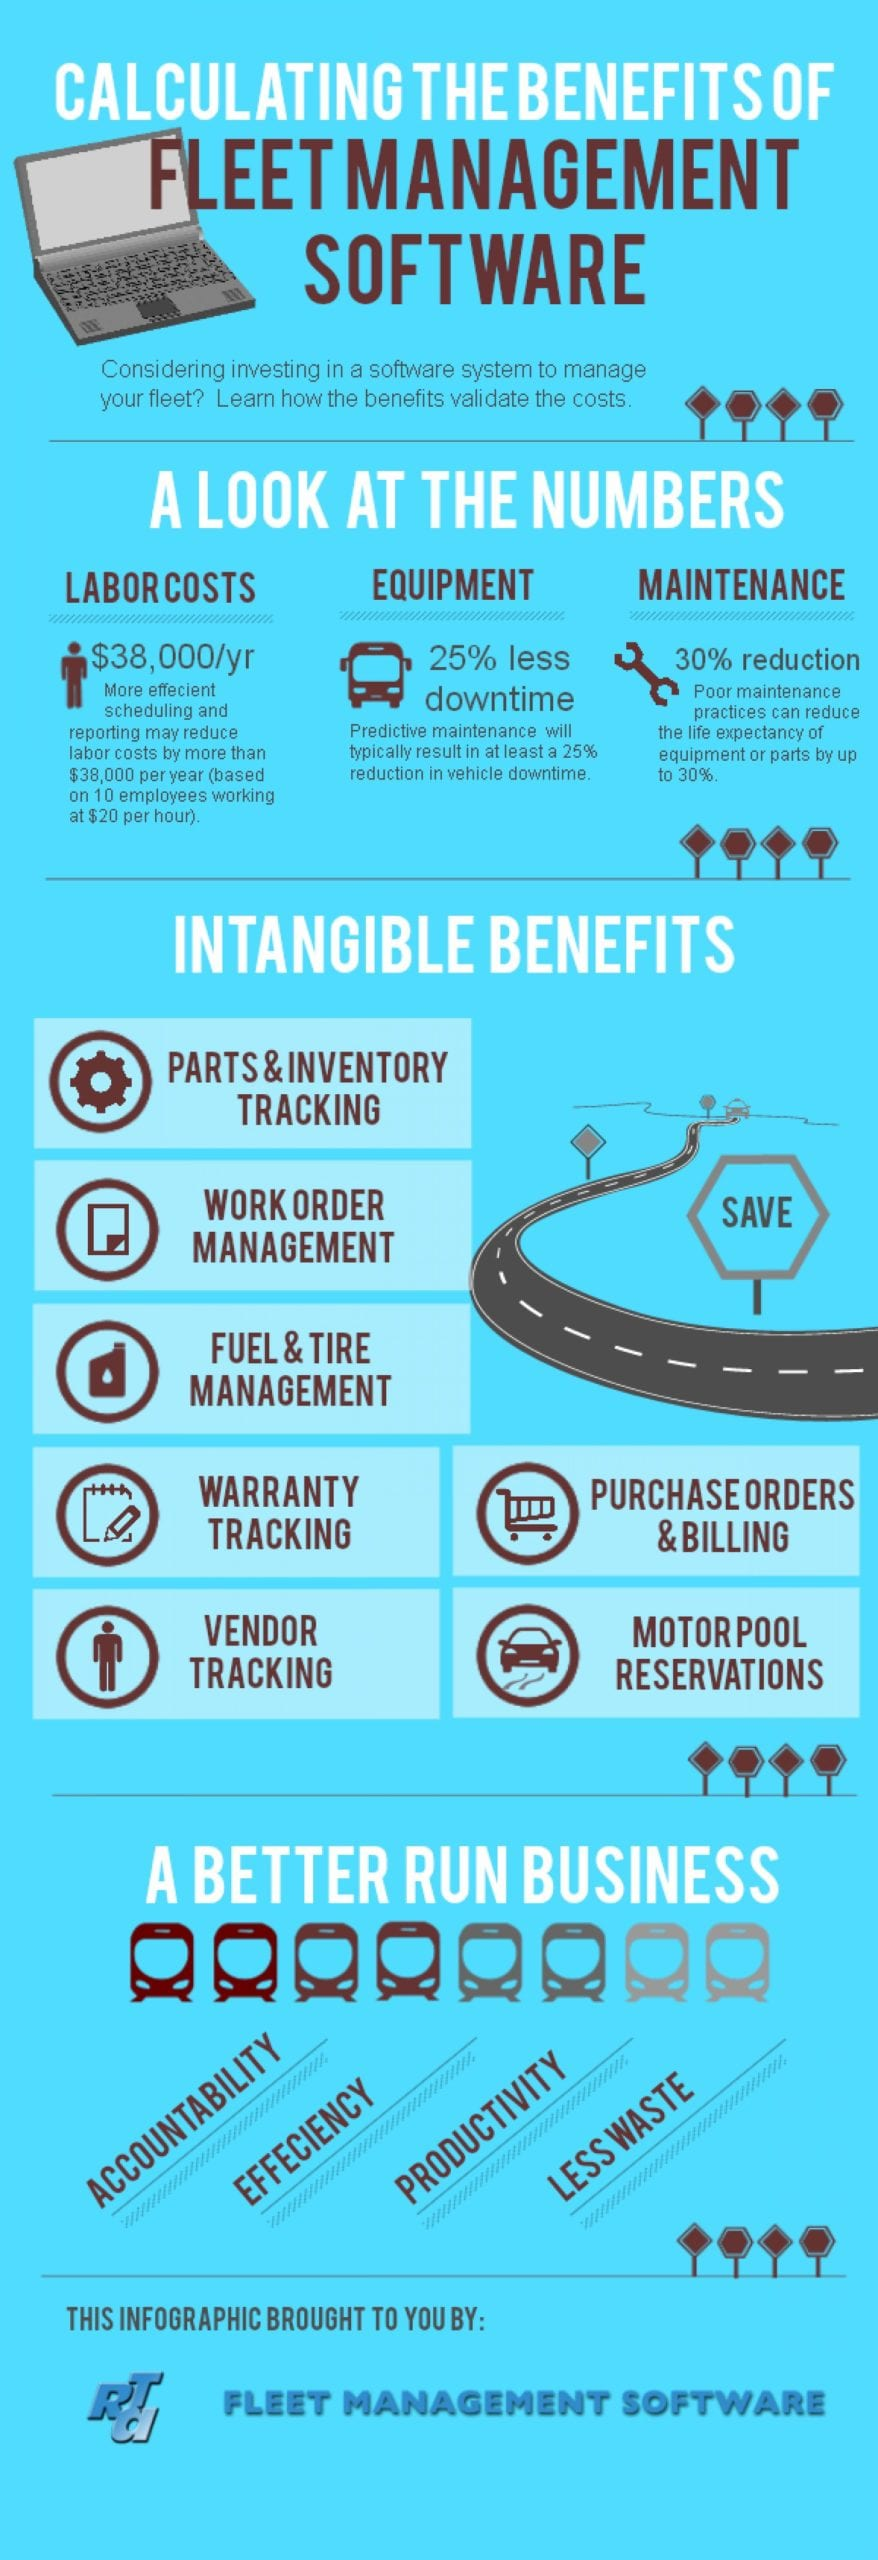 List of Beneffits of Fleet Management Software - Infographic